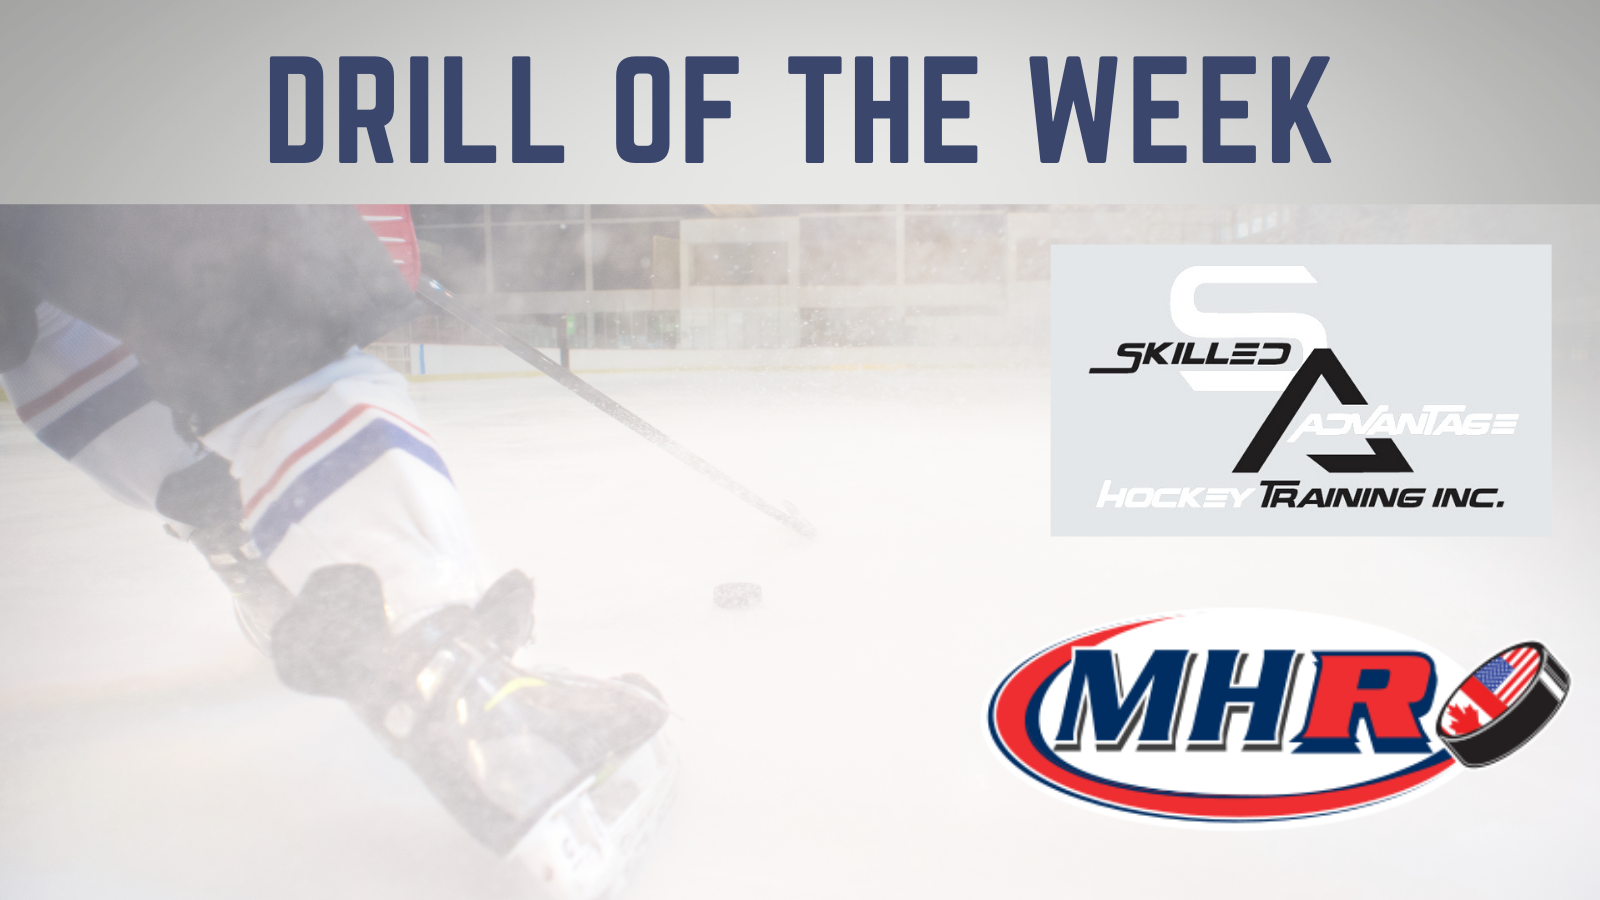 Drill of the Week 1 Powered by Skilled Advantage Hockey